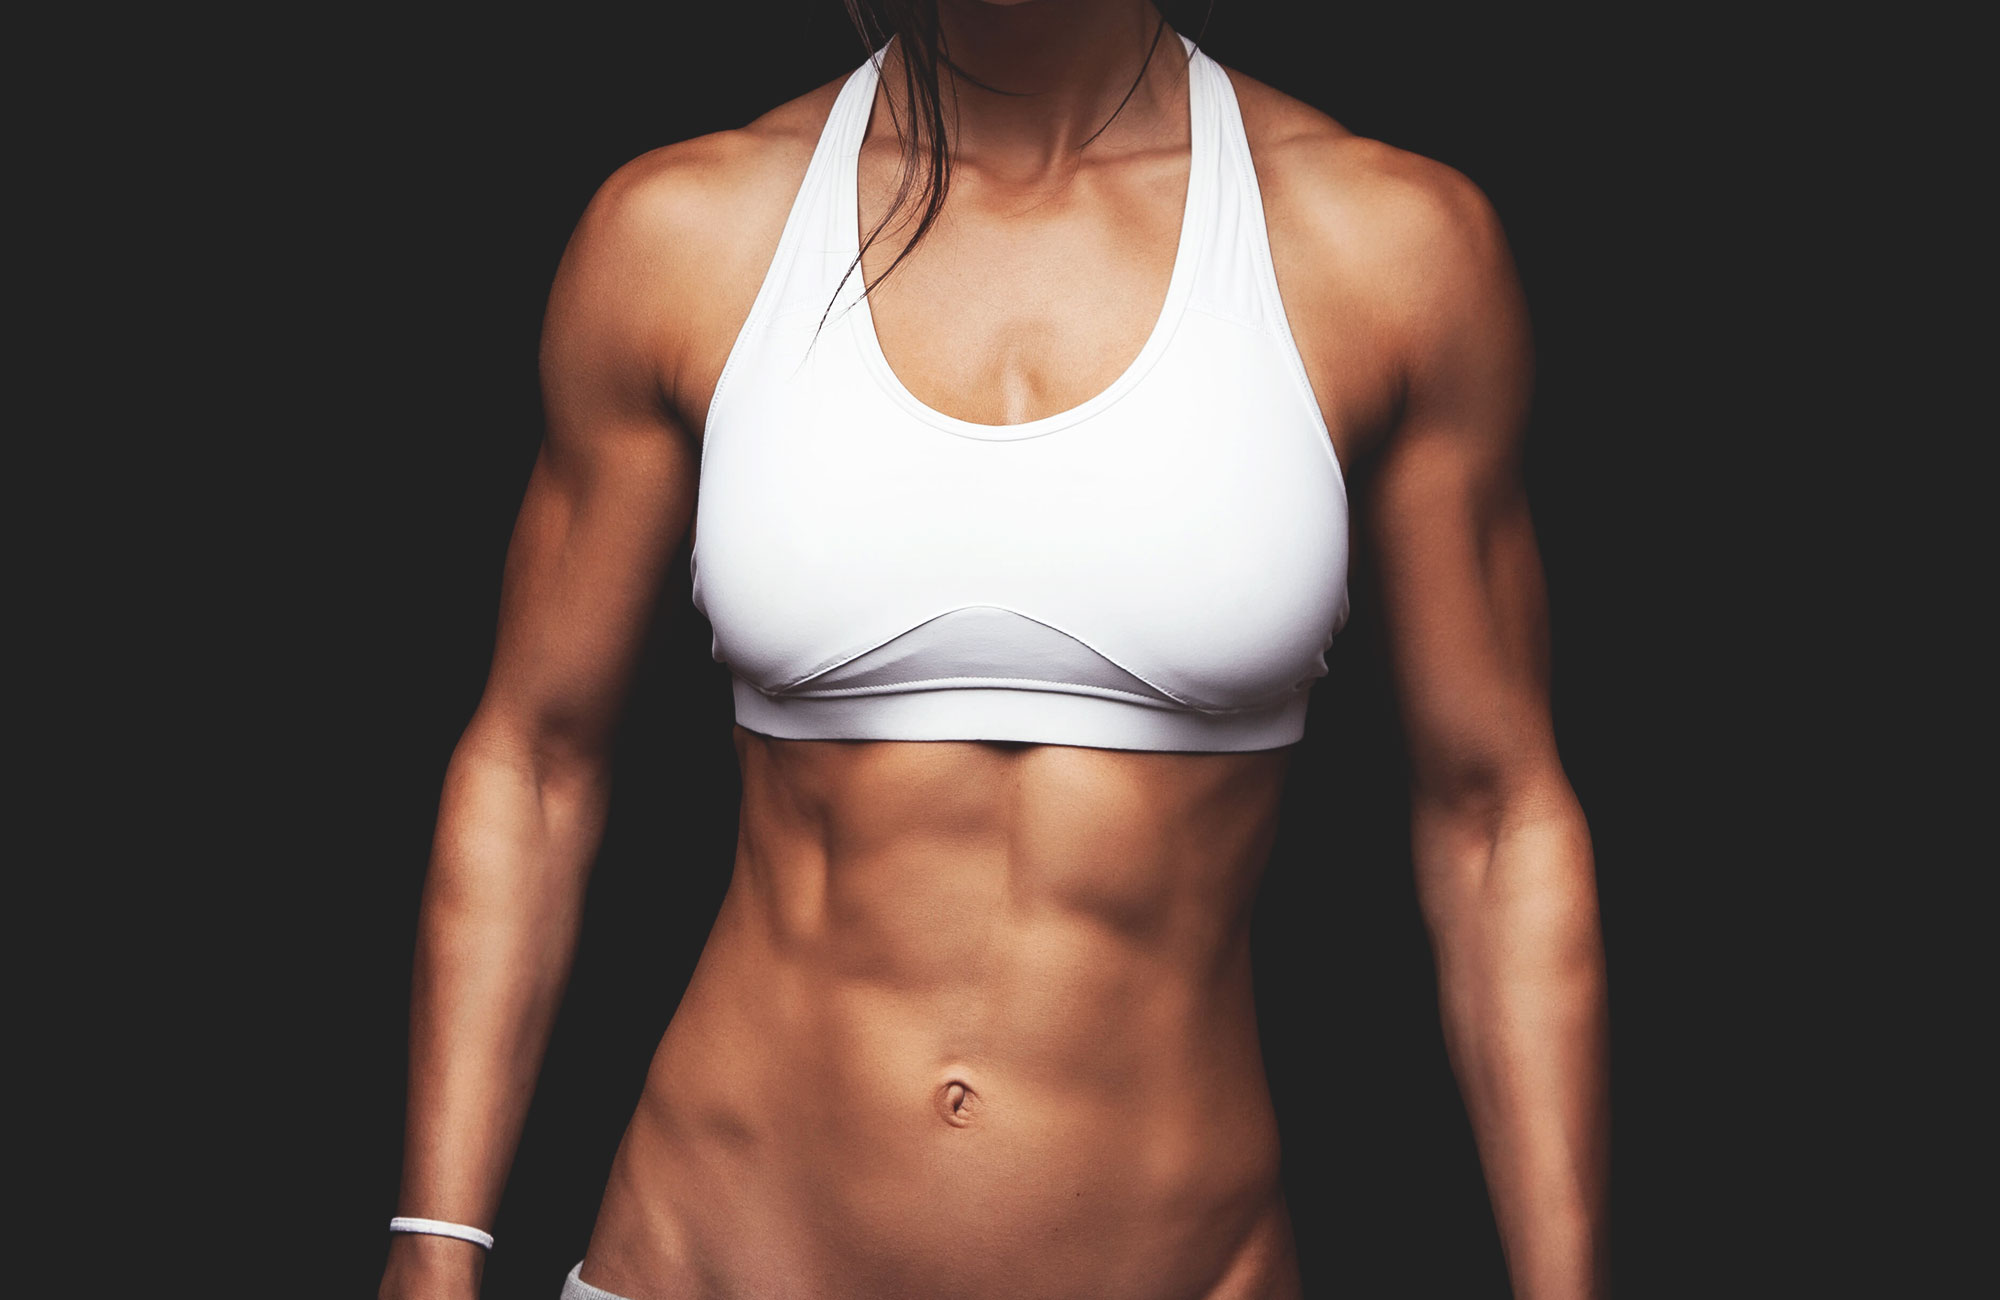 What Is The Best Method For Building Your Ultimate Physique?